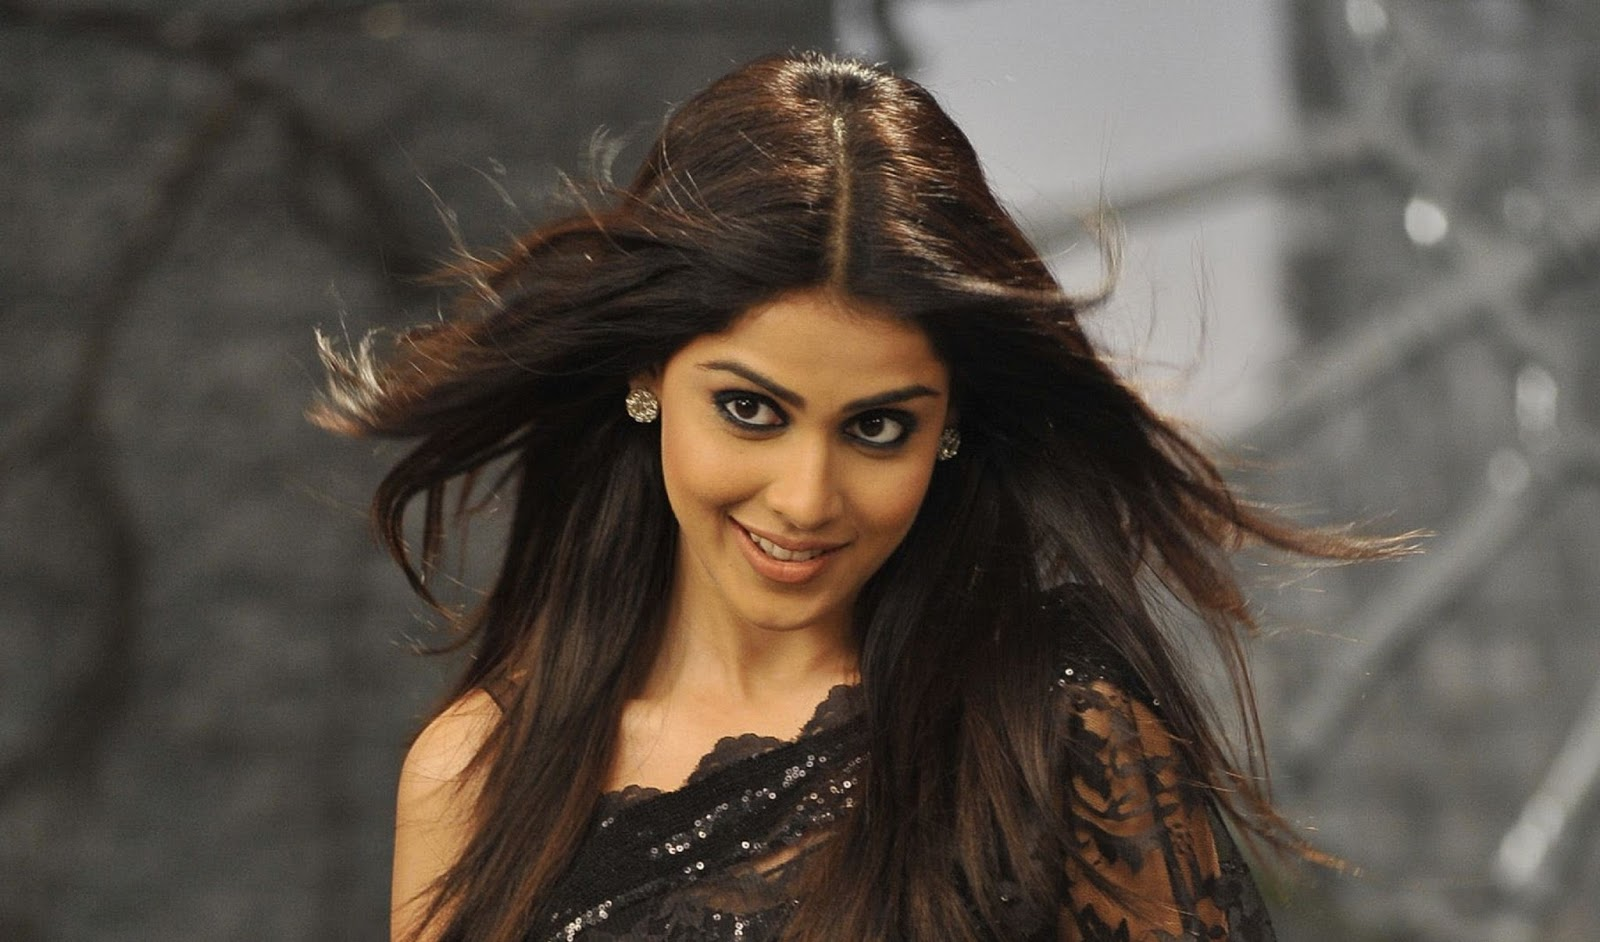 genelia d'souza wallpapers free download | indian hd wallpaper free